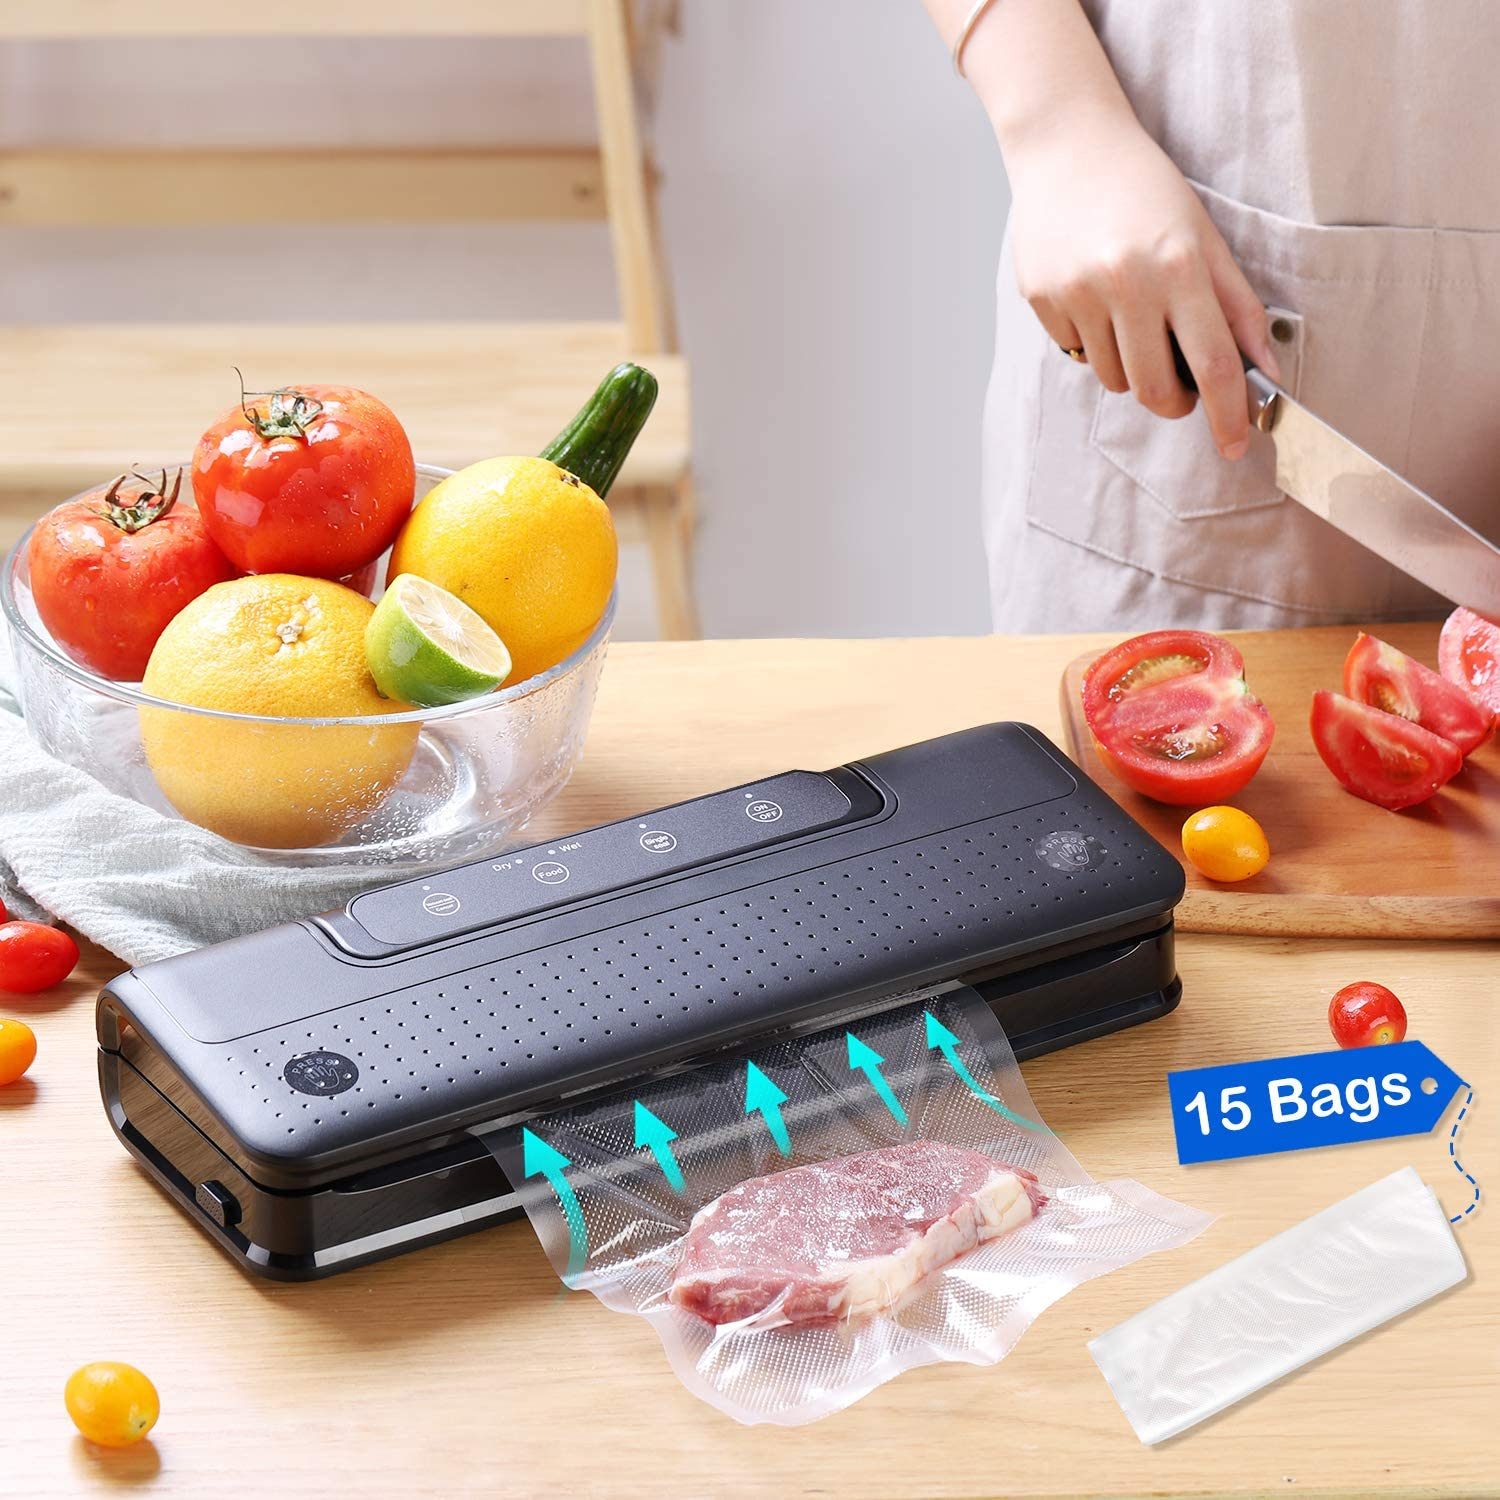 Vacuum Sealer Machine, Automatic Food Sealer withDry & Wet ModesVacuum Sealer forFood Preservation Packed withFood Storage Saver Bag, Safe and Easy to Clean, Black